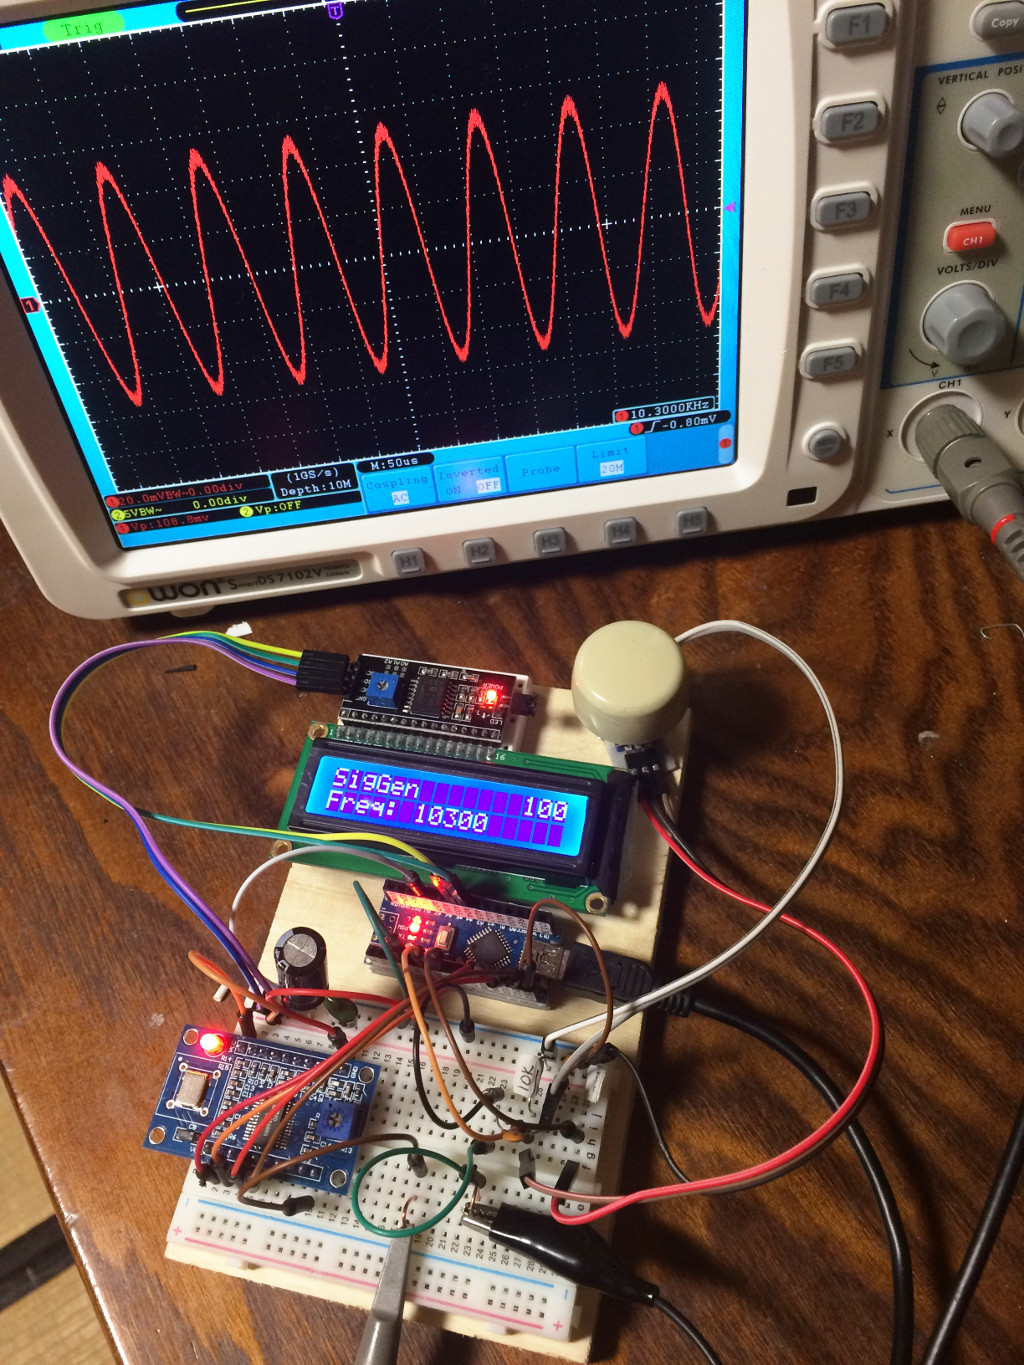 Ad9850 Based Signal Generator At Rotary Encoder Display Schematic Admittedly The Tricky Part Of This Was Getting To Behave But I Think Came Up With A Good Algorithm Deal It Which Is Responsive